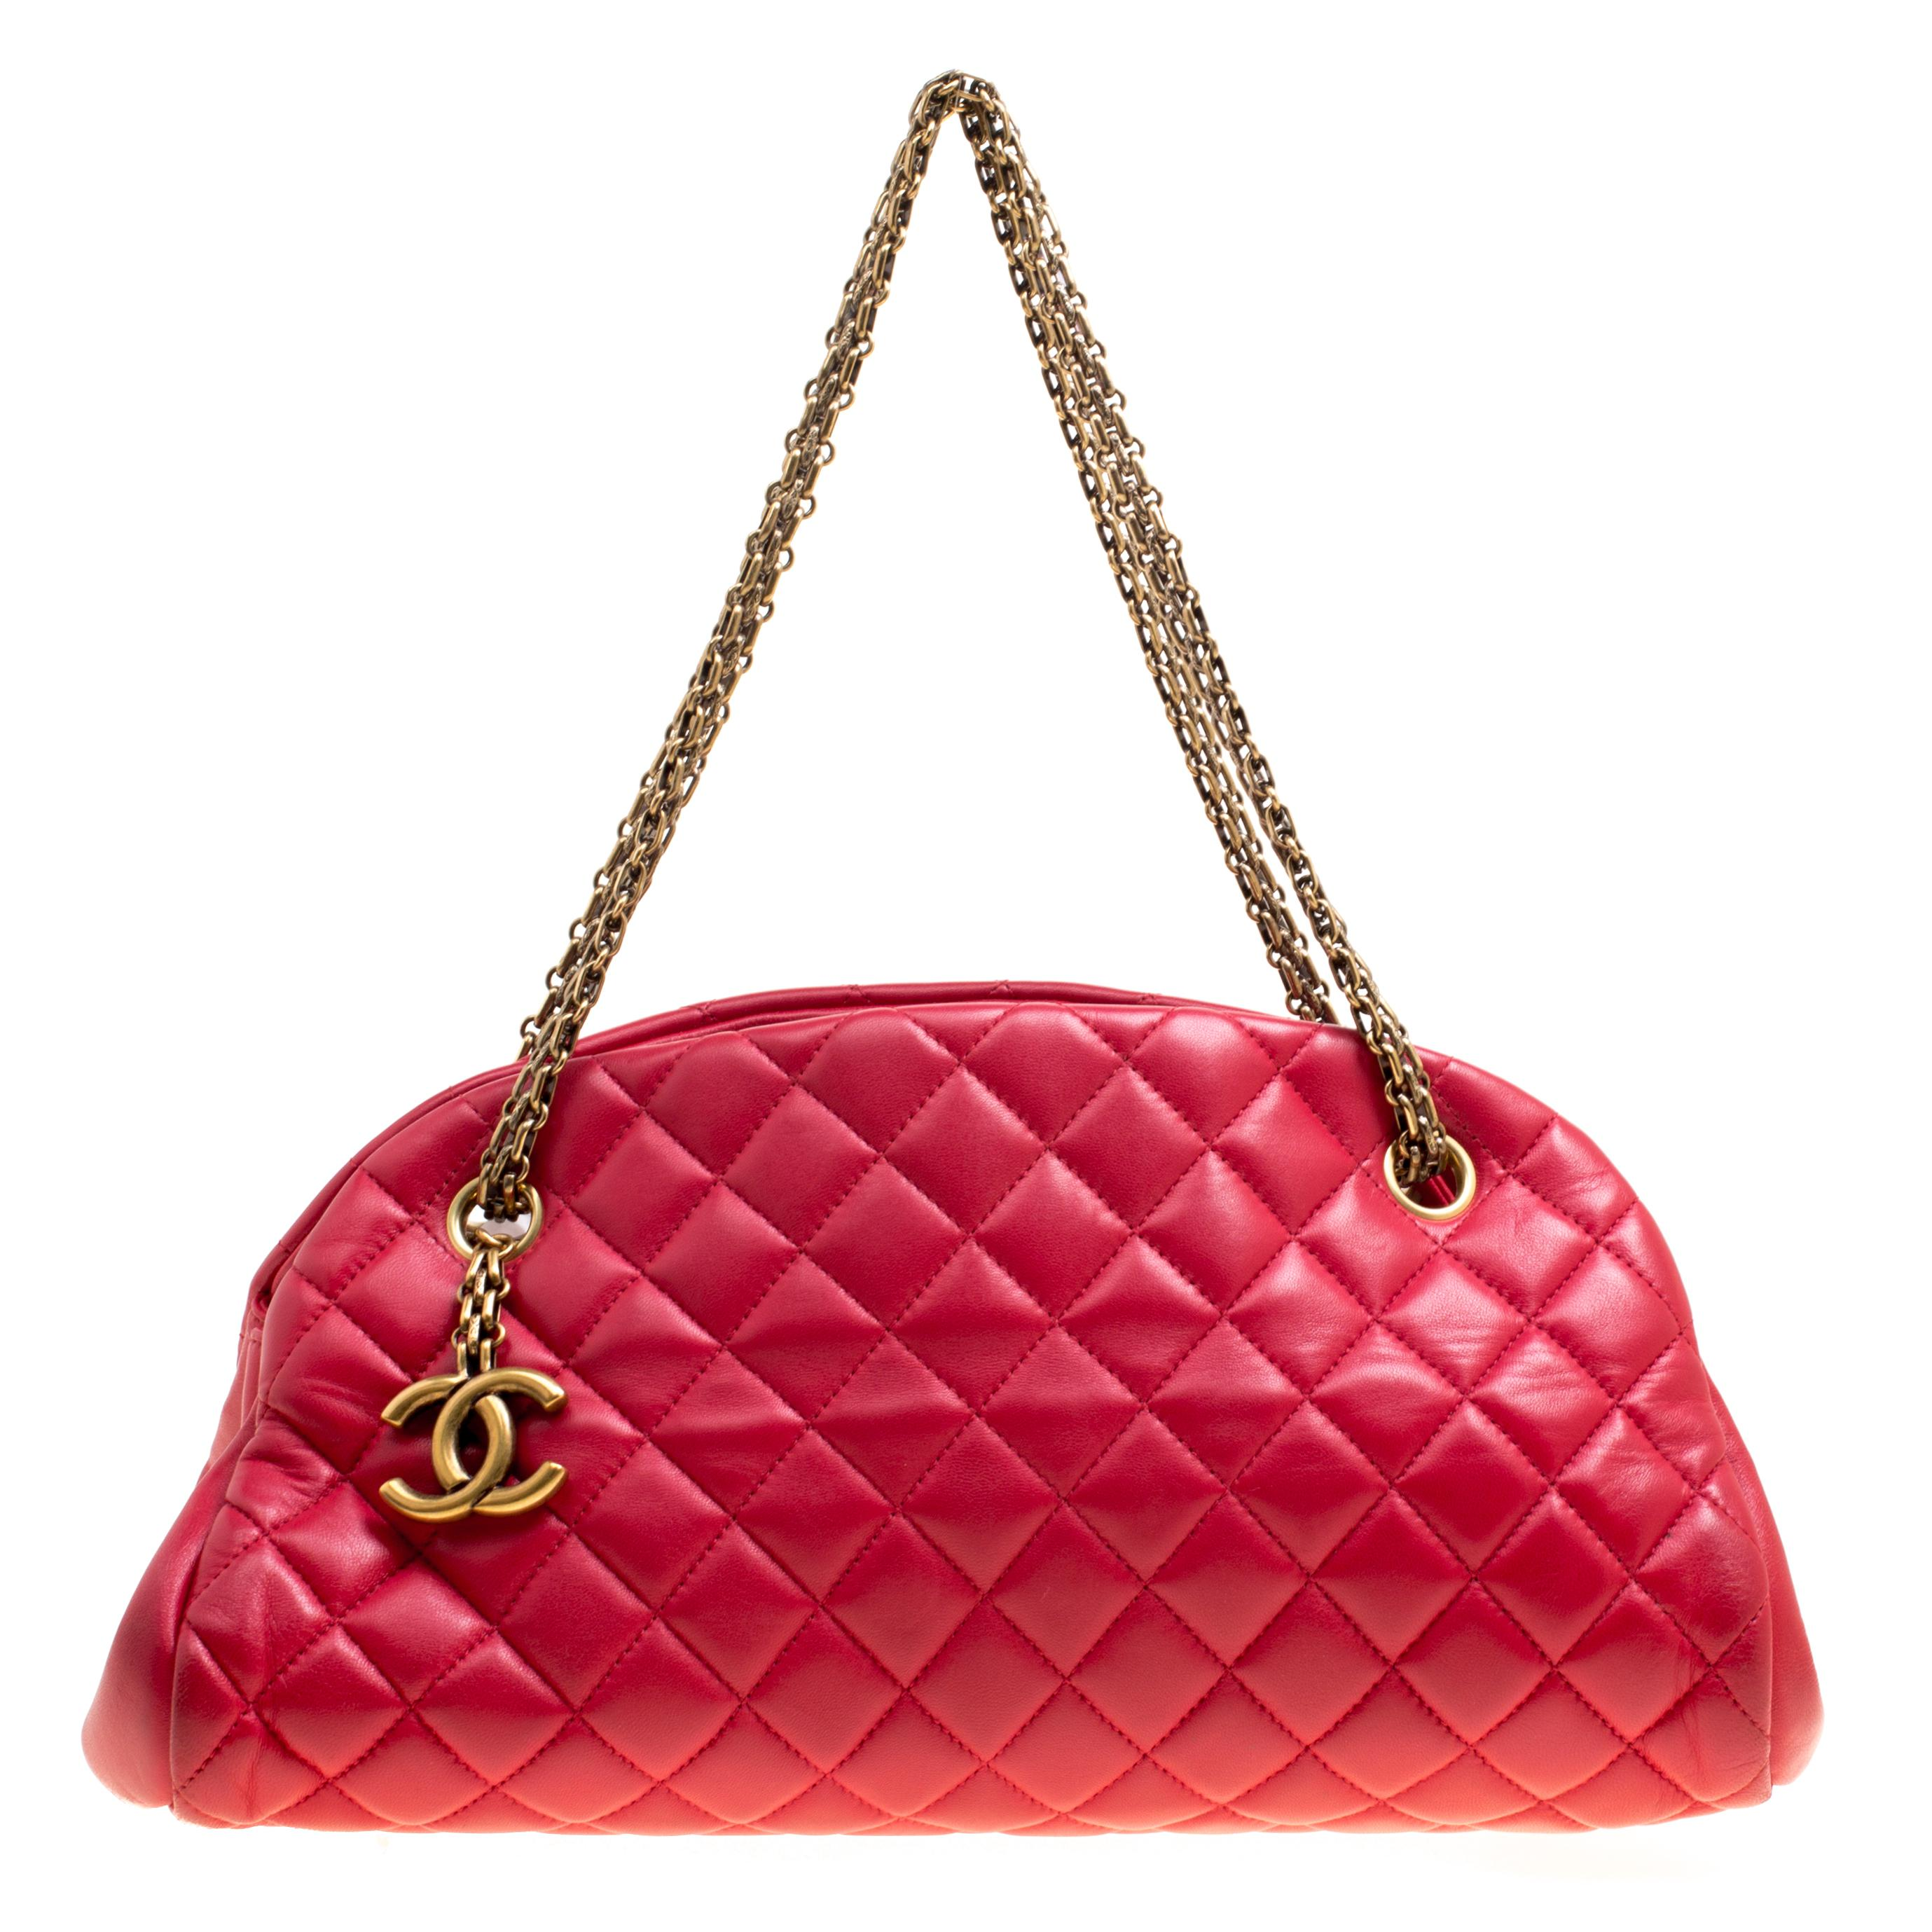 01840d3f1be4 Chanel. Women s Red Quilted Leather Medium Just Mademoiselle Bowling Bag